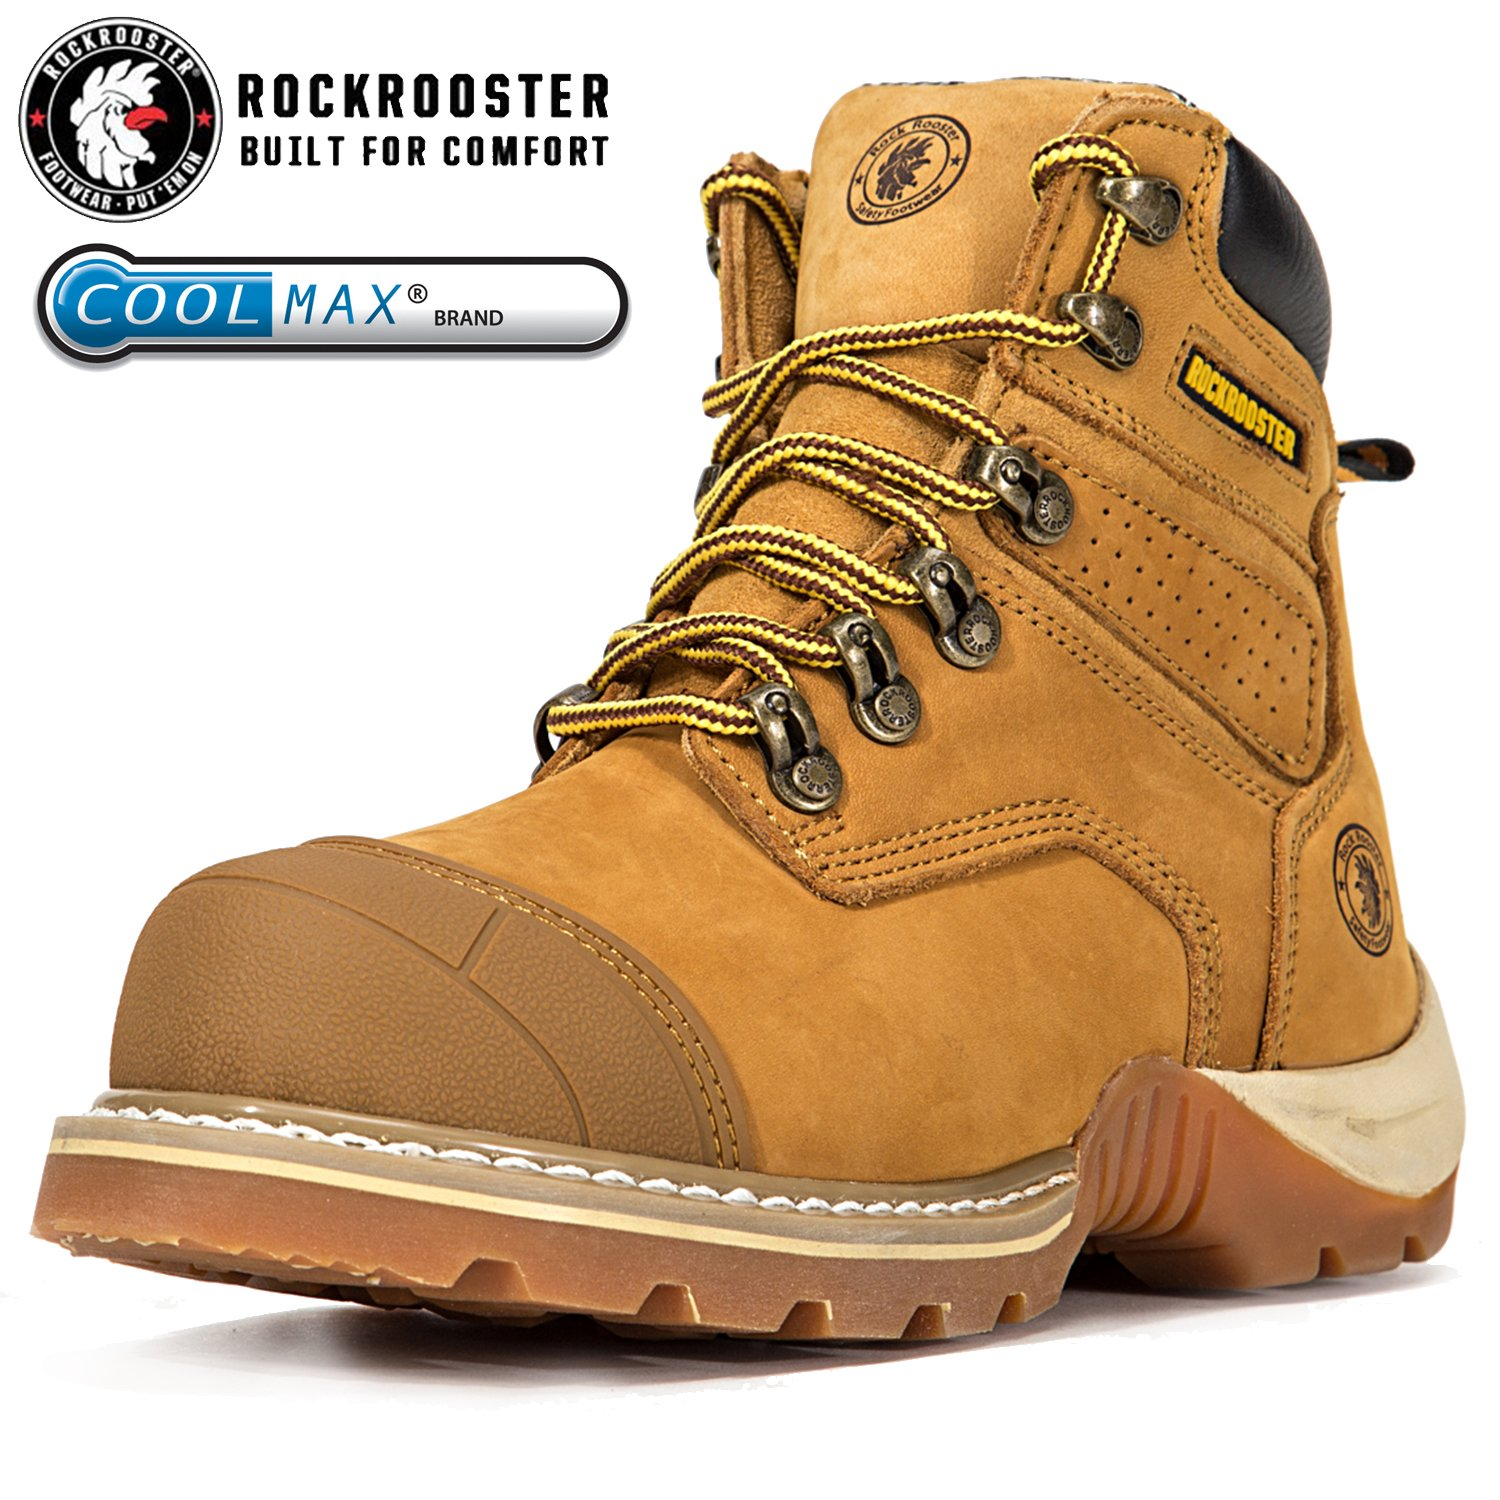 ROCKROOSTER Men's Work Boots, Composite Toe, Safety Water Resistant Leather, Women Shoes, Width EE-Normal (AP268, US 6)